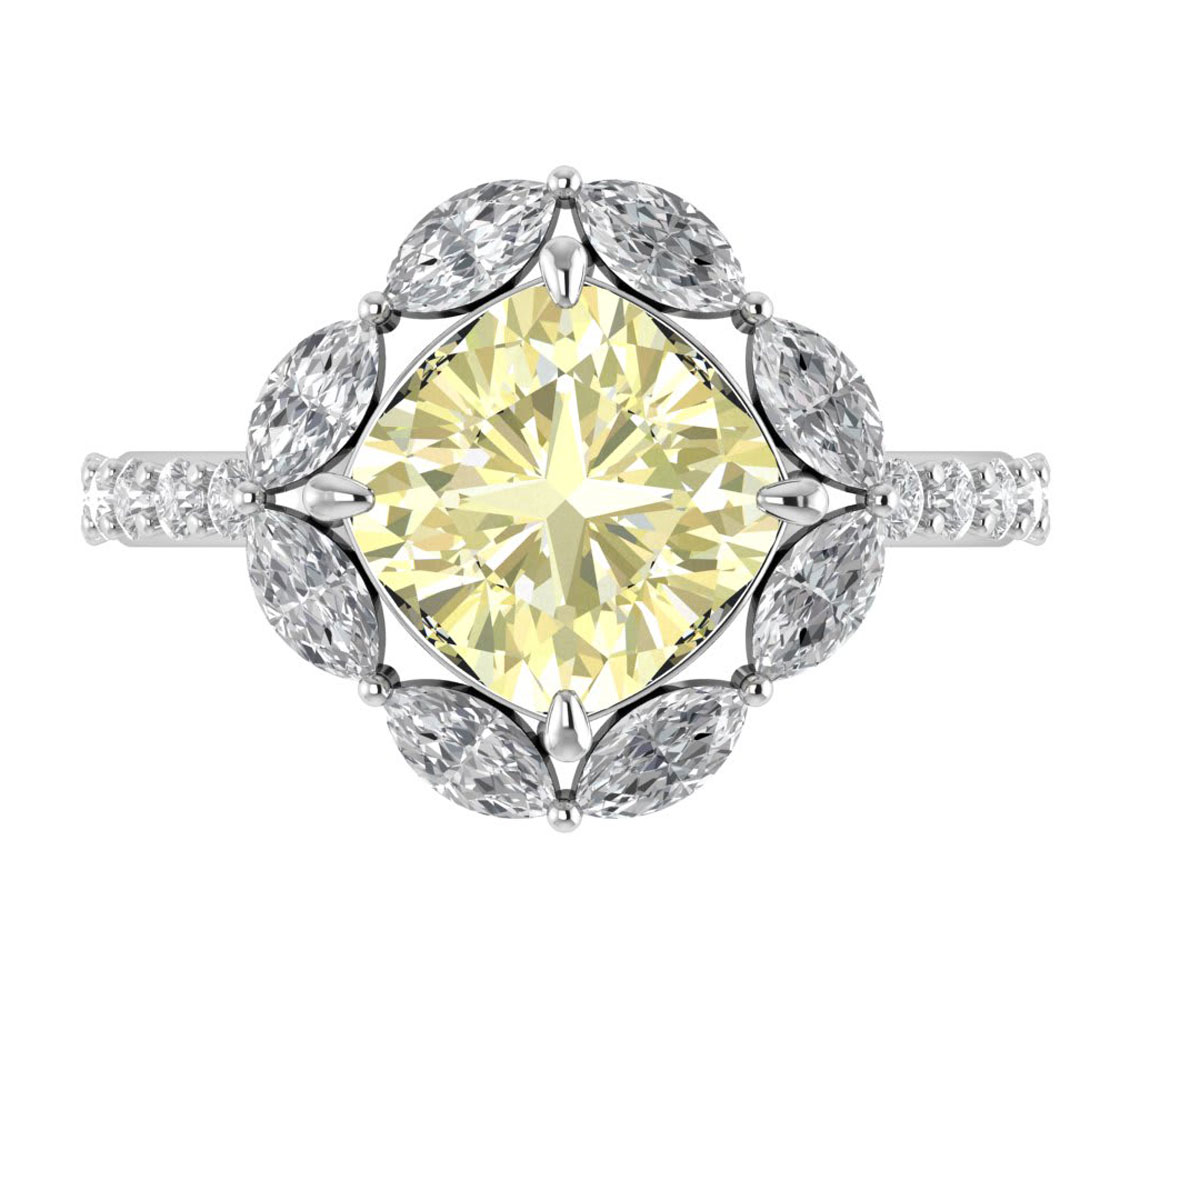 Amore Yellow Moissanite Ring